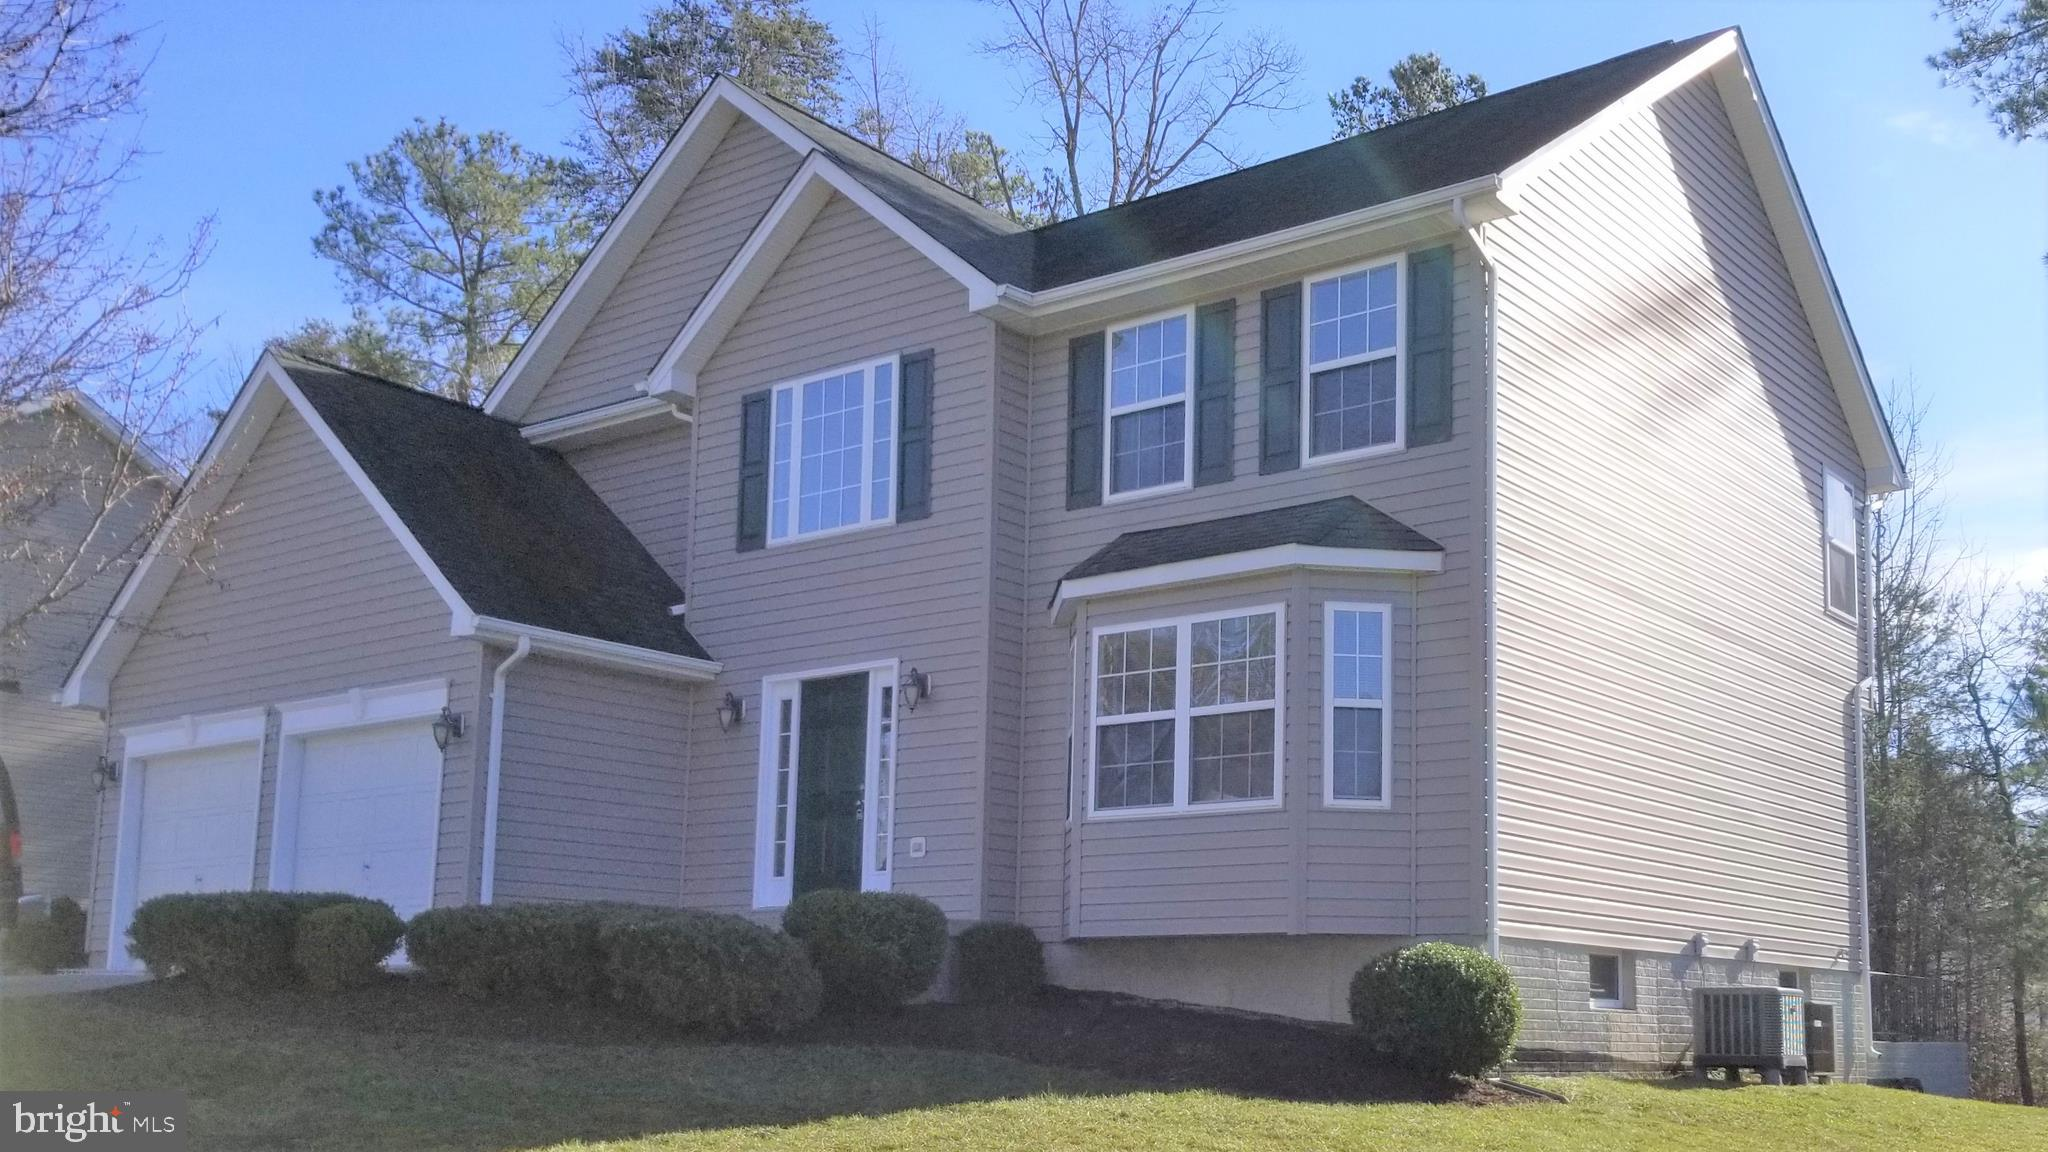 Looks like a New Home! Freshly painted ! this 4 bedroom 2.5 bath home in lovely area of Willow Woods